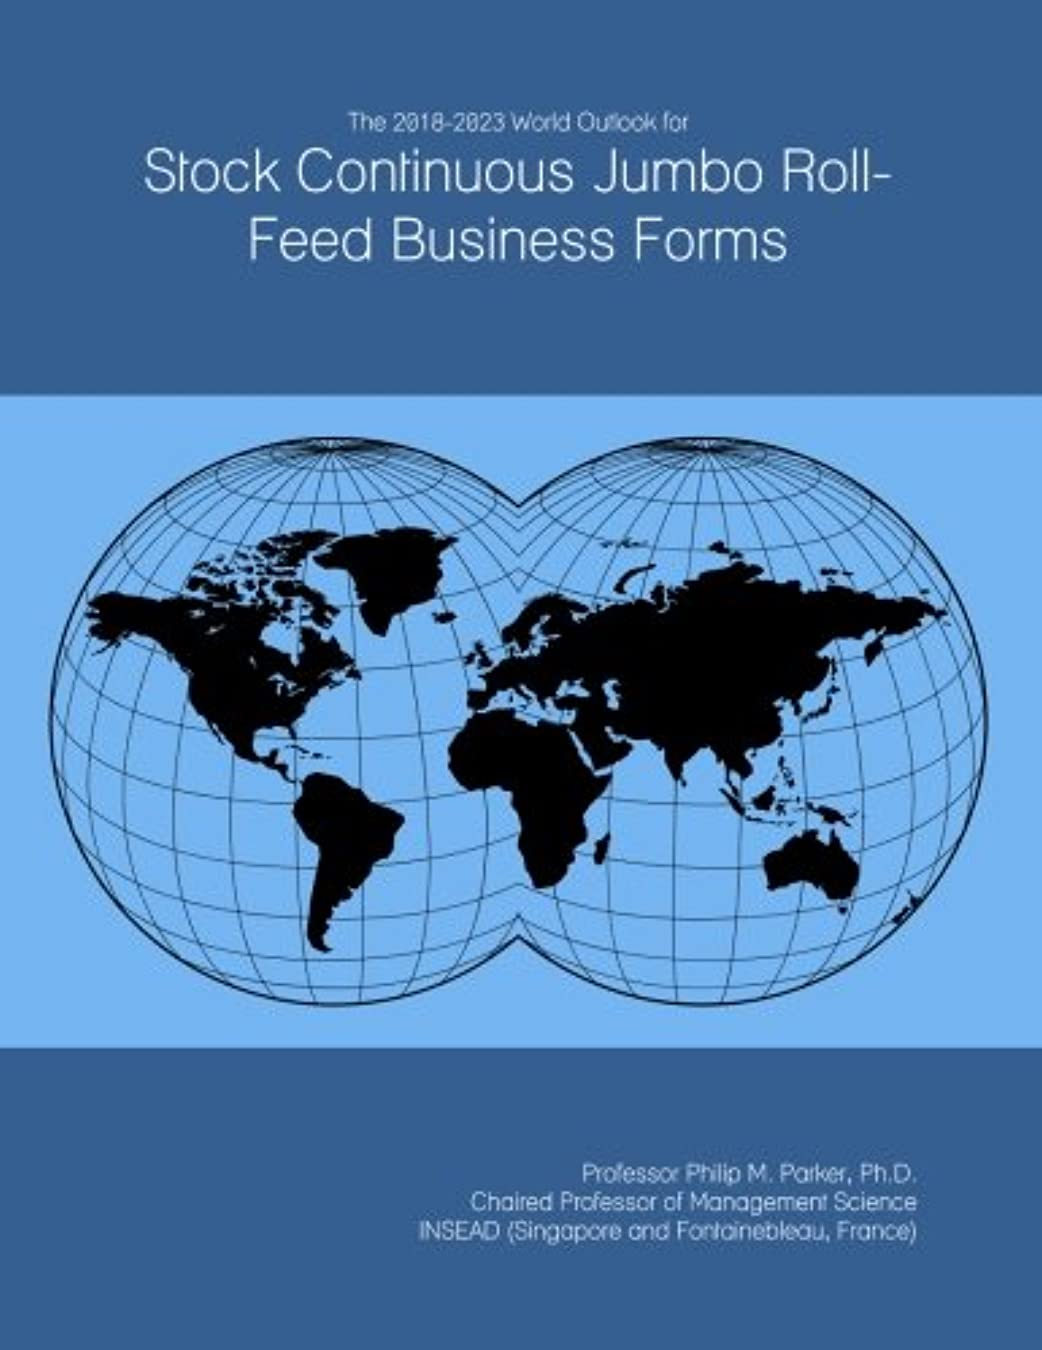 The 2018-2023 World Outlook for Stock Continuous Jumbo Roll-Feed Business Forms